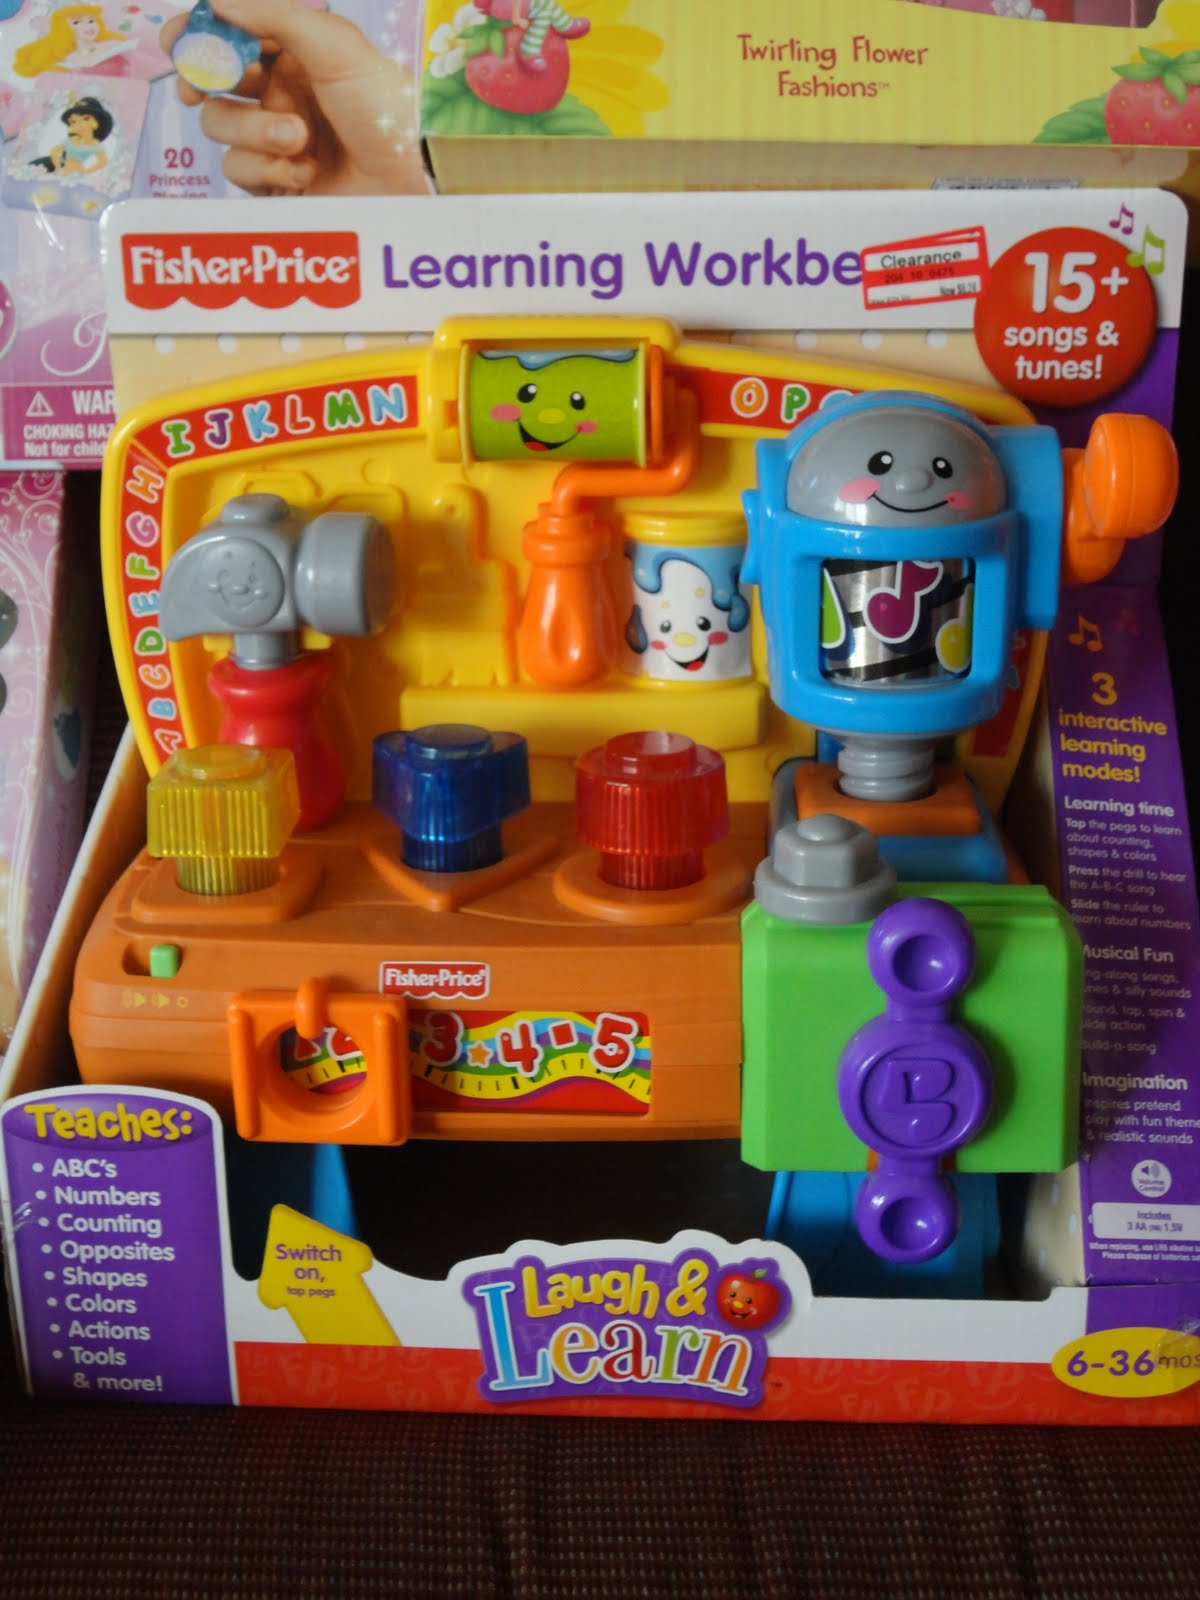 M Loves Deals!: Target: My Target 7/28/11 TOY Clearance ...